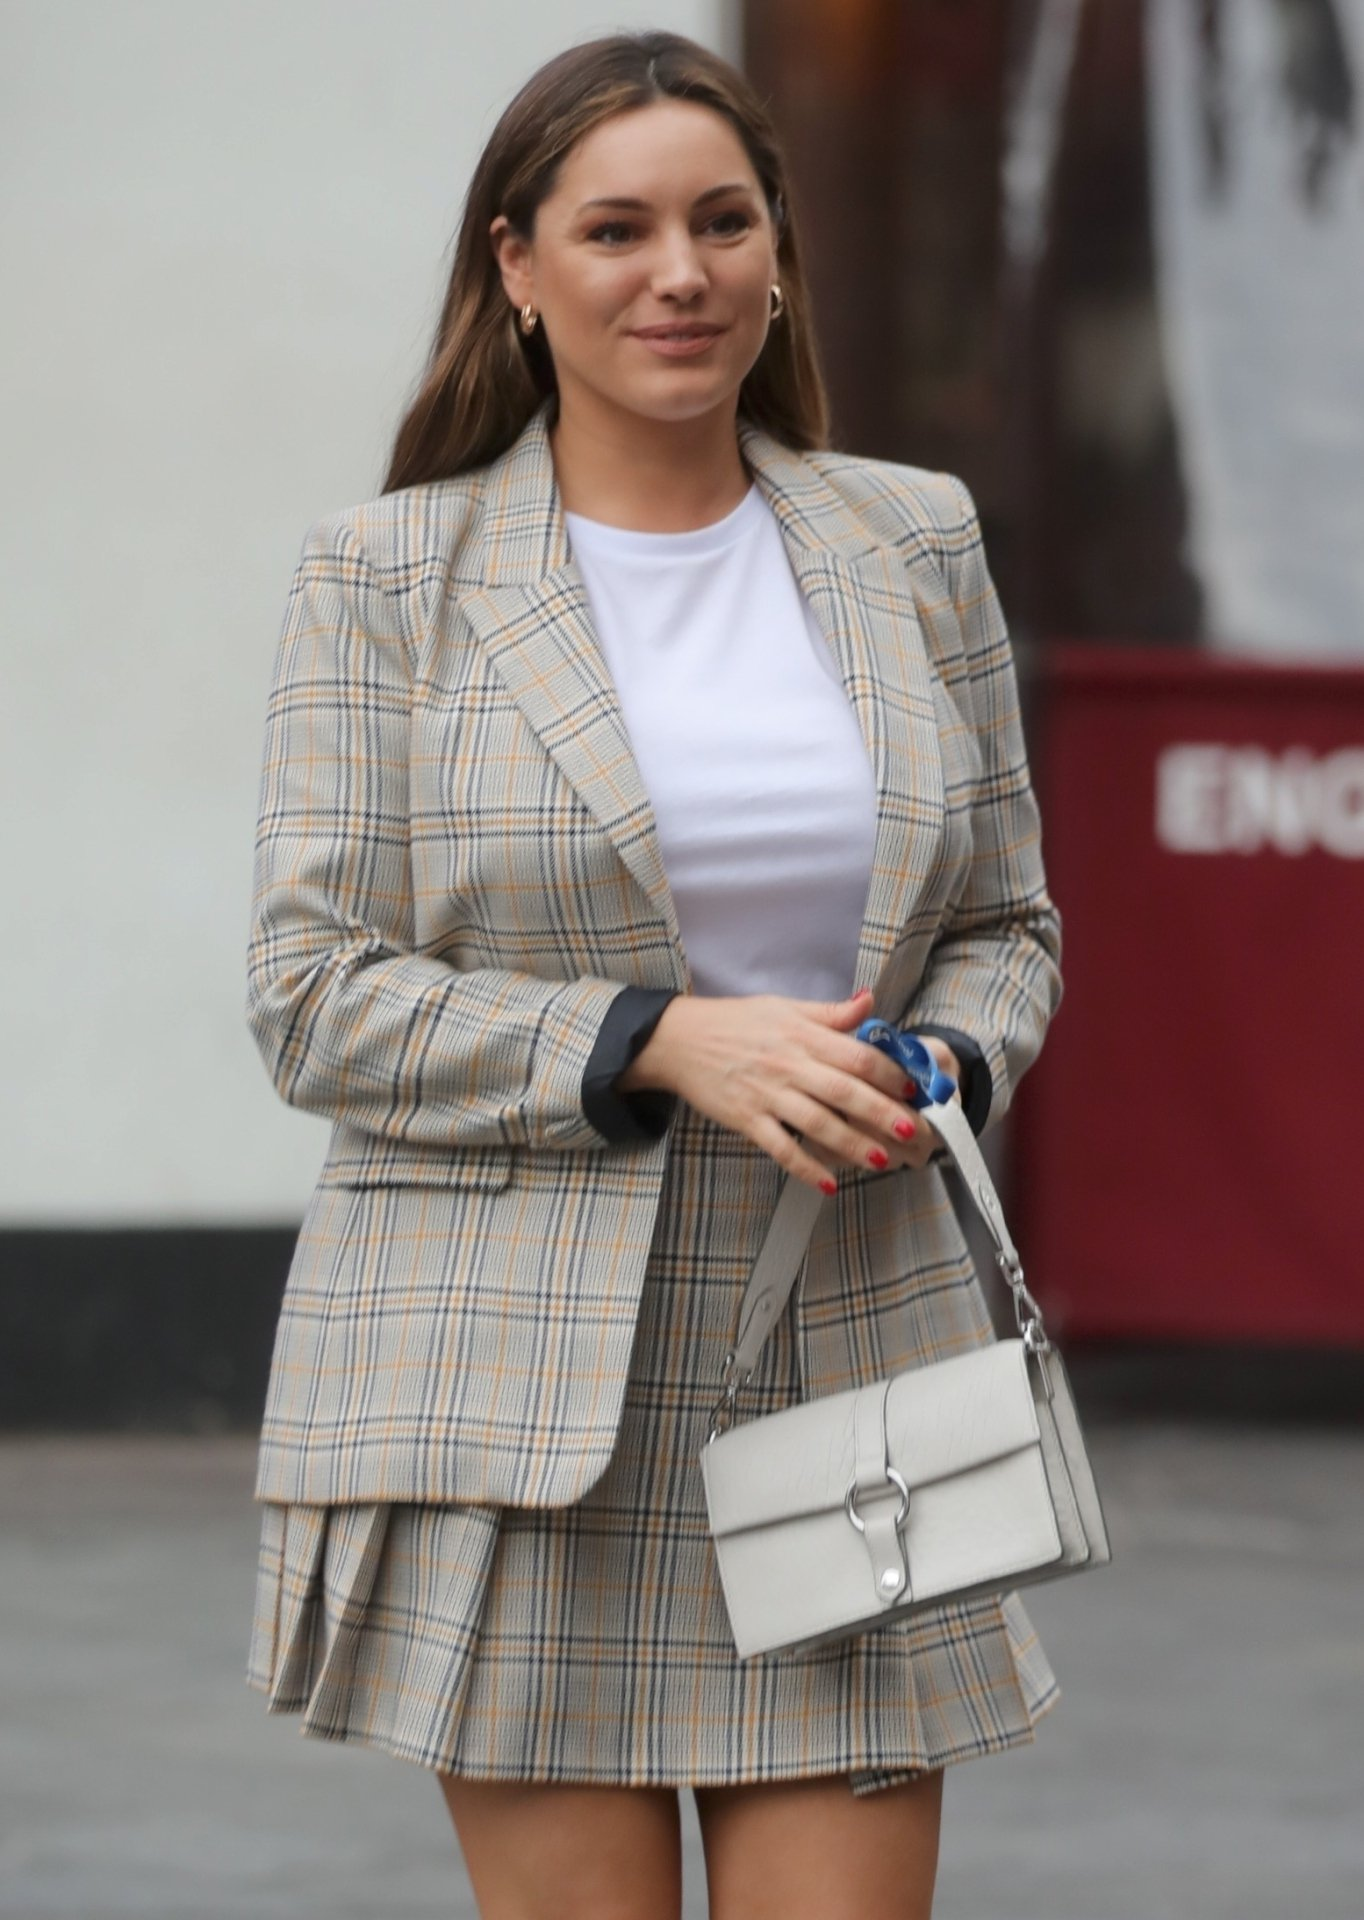 Kelly Brook – Candids in London